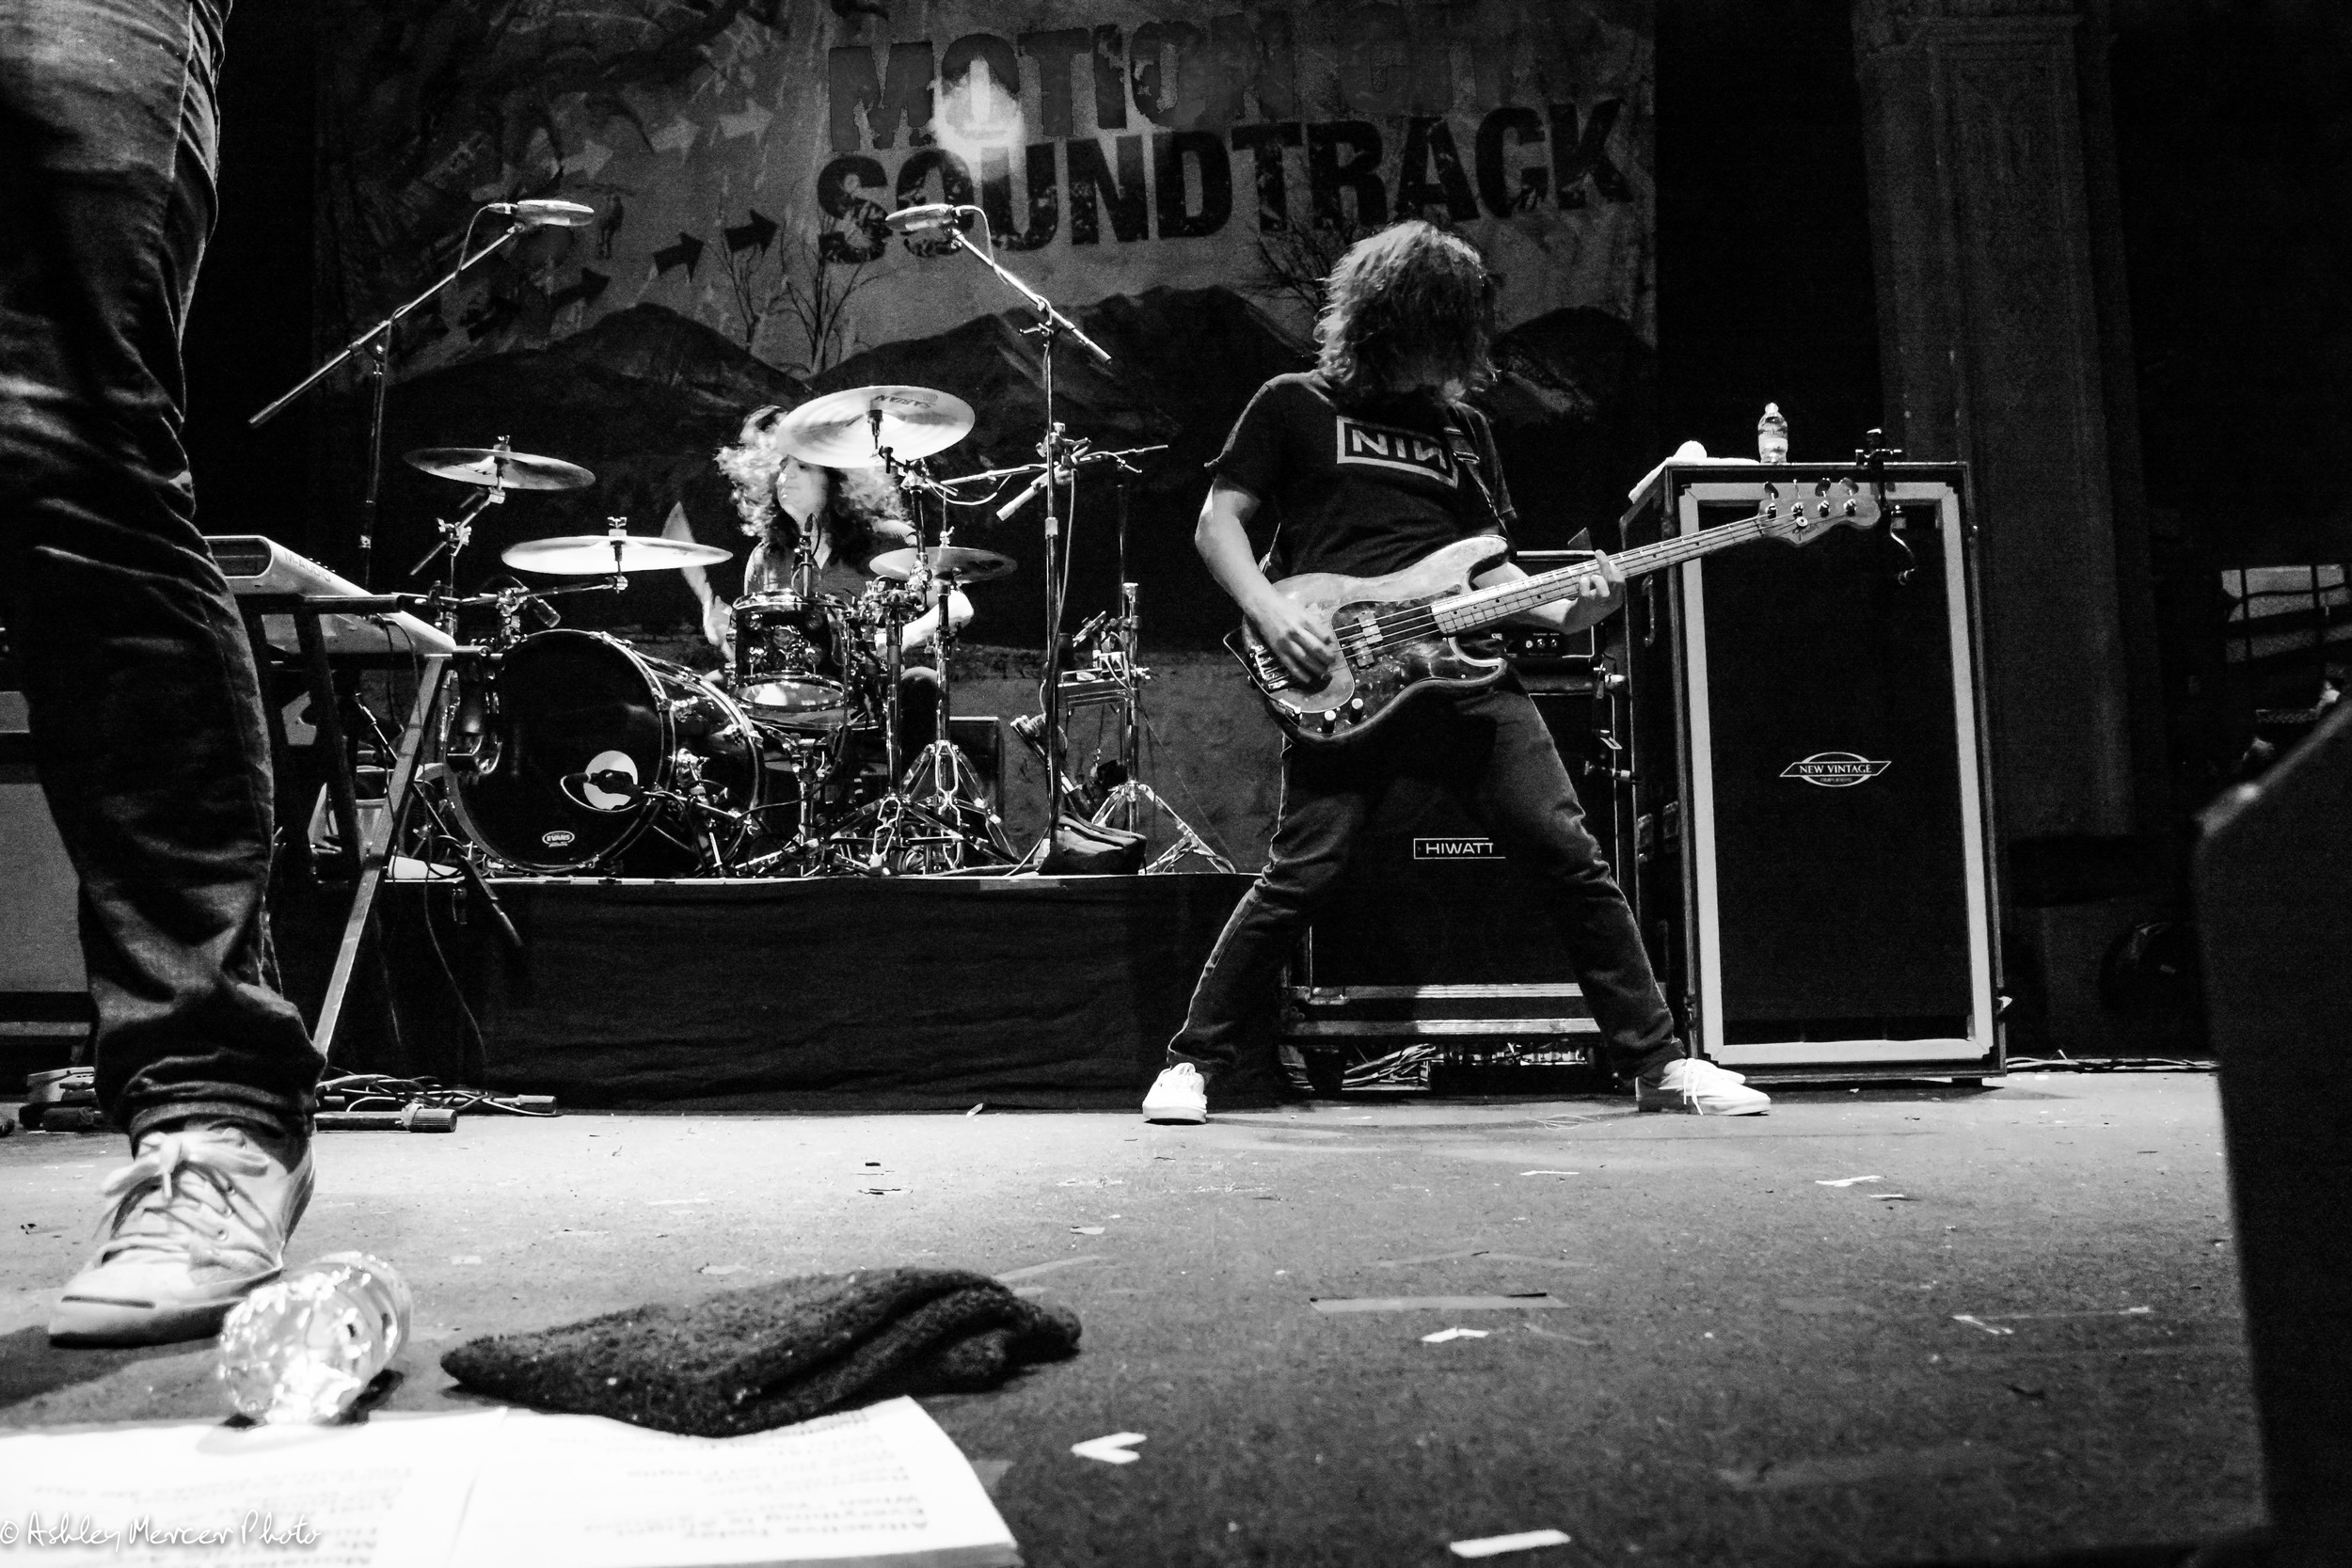 motion city soundtrack-21.jpg